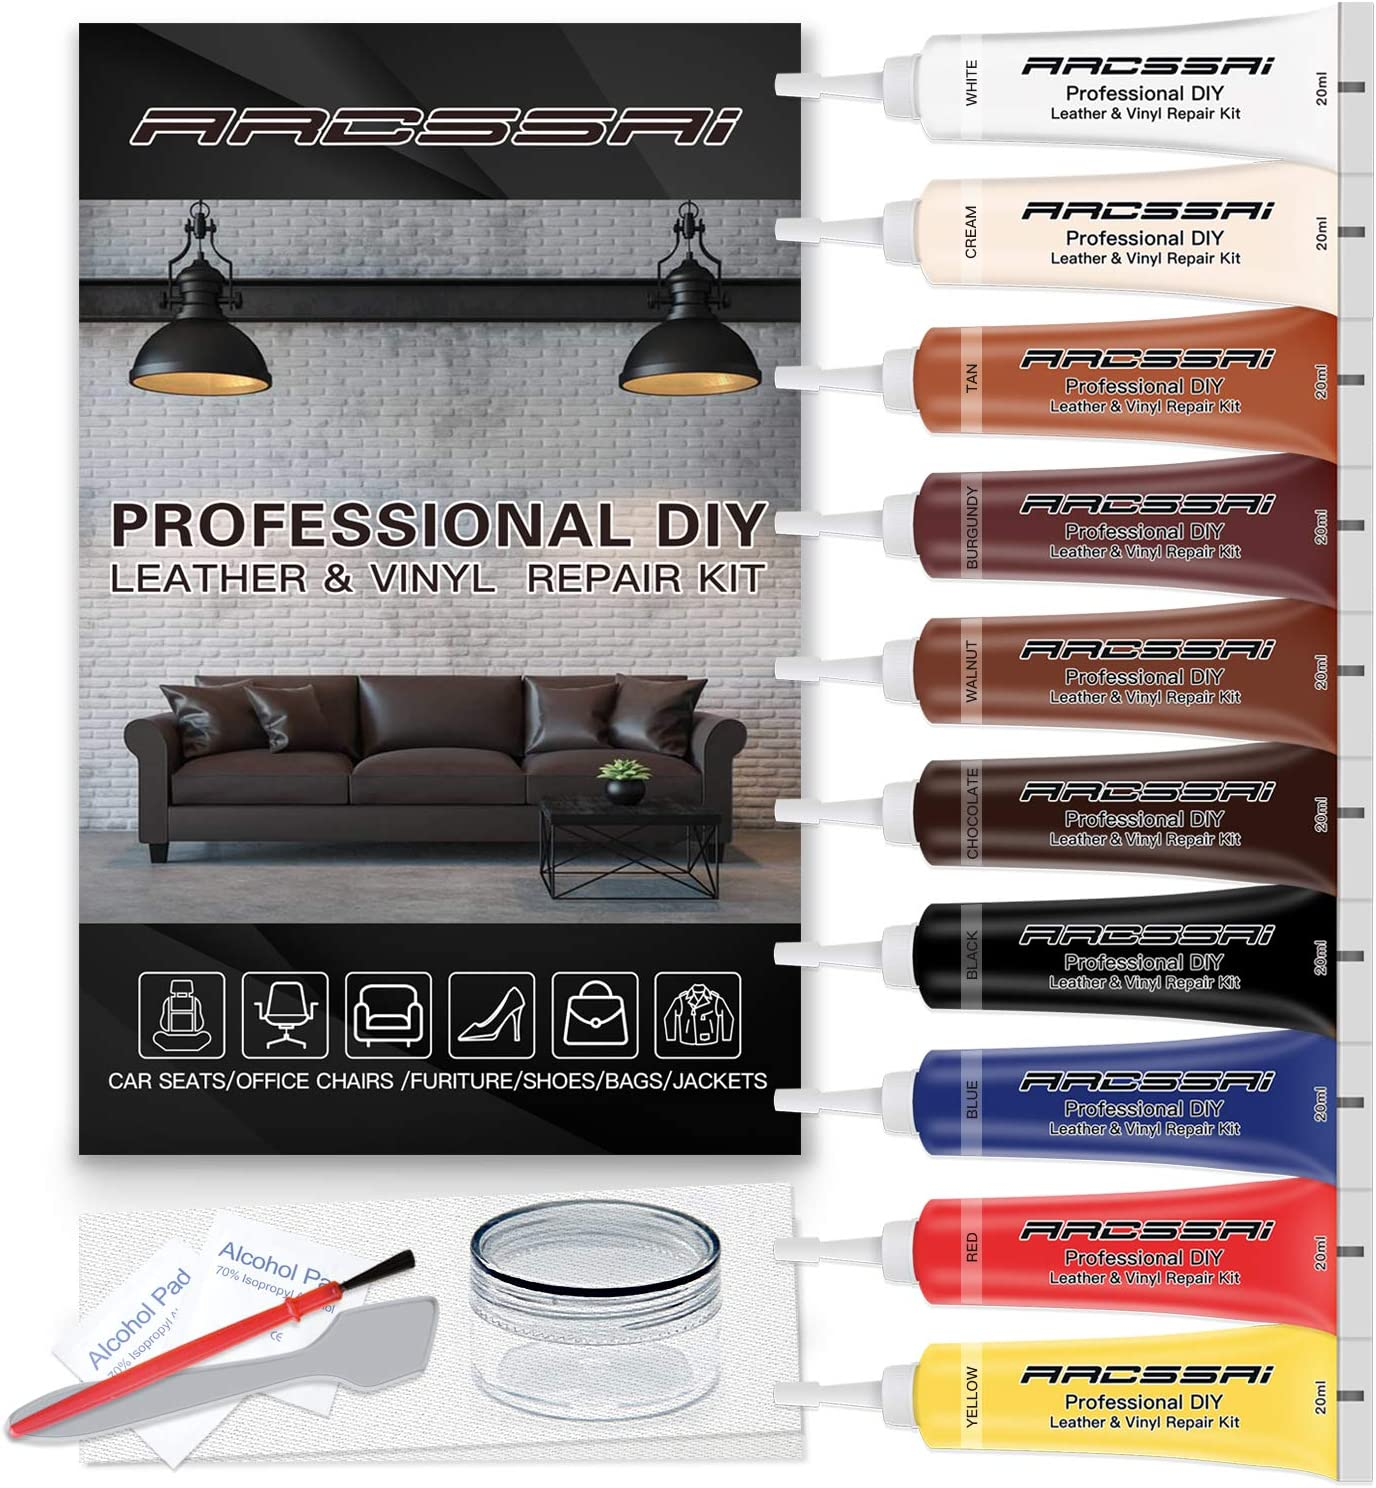 Amazon Com Vinyl And Leather Repair Kit For Couches P Leather Leather Repair Paint Gel For Sofa Jacket Furniture Car Seats Purse Perfect Color Matching For Genuine Bonded Pu Faux Leather Arts